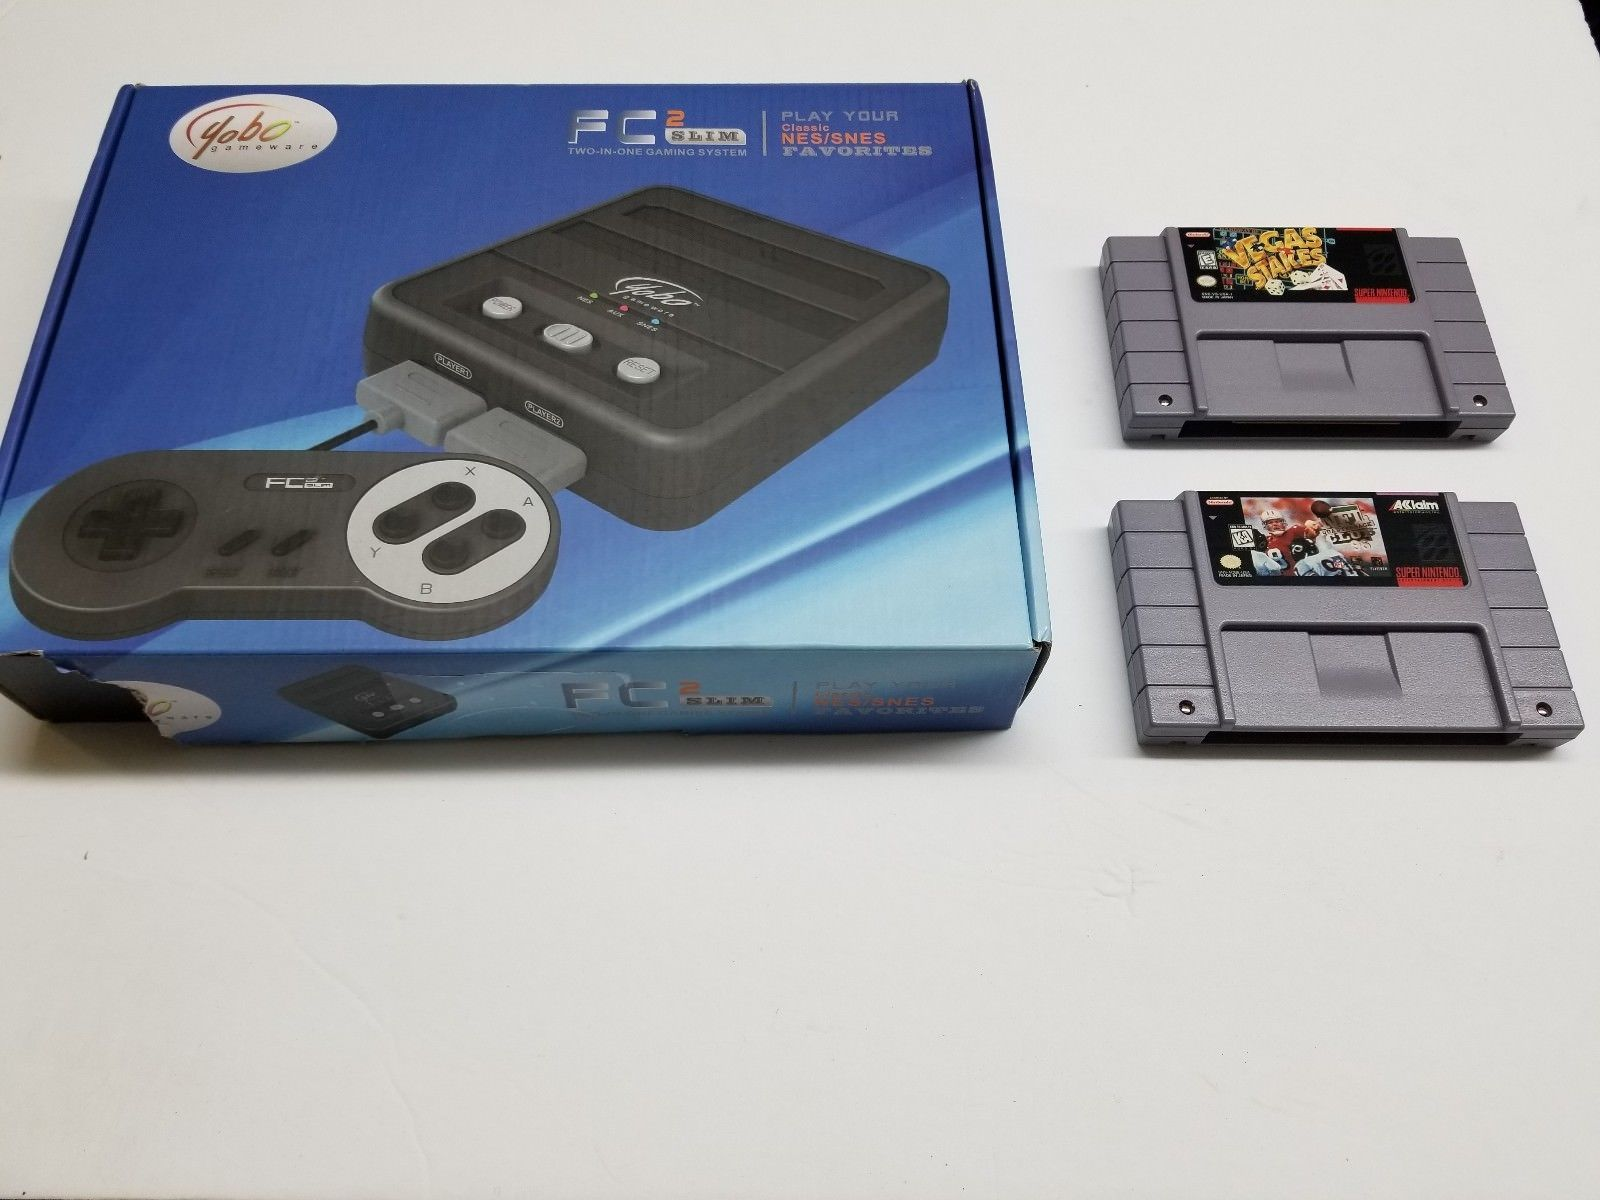 2 Games+ FC 2 Twin Slim Console for NES and similar items